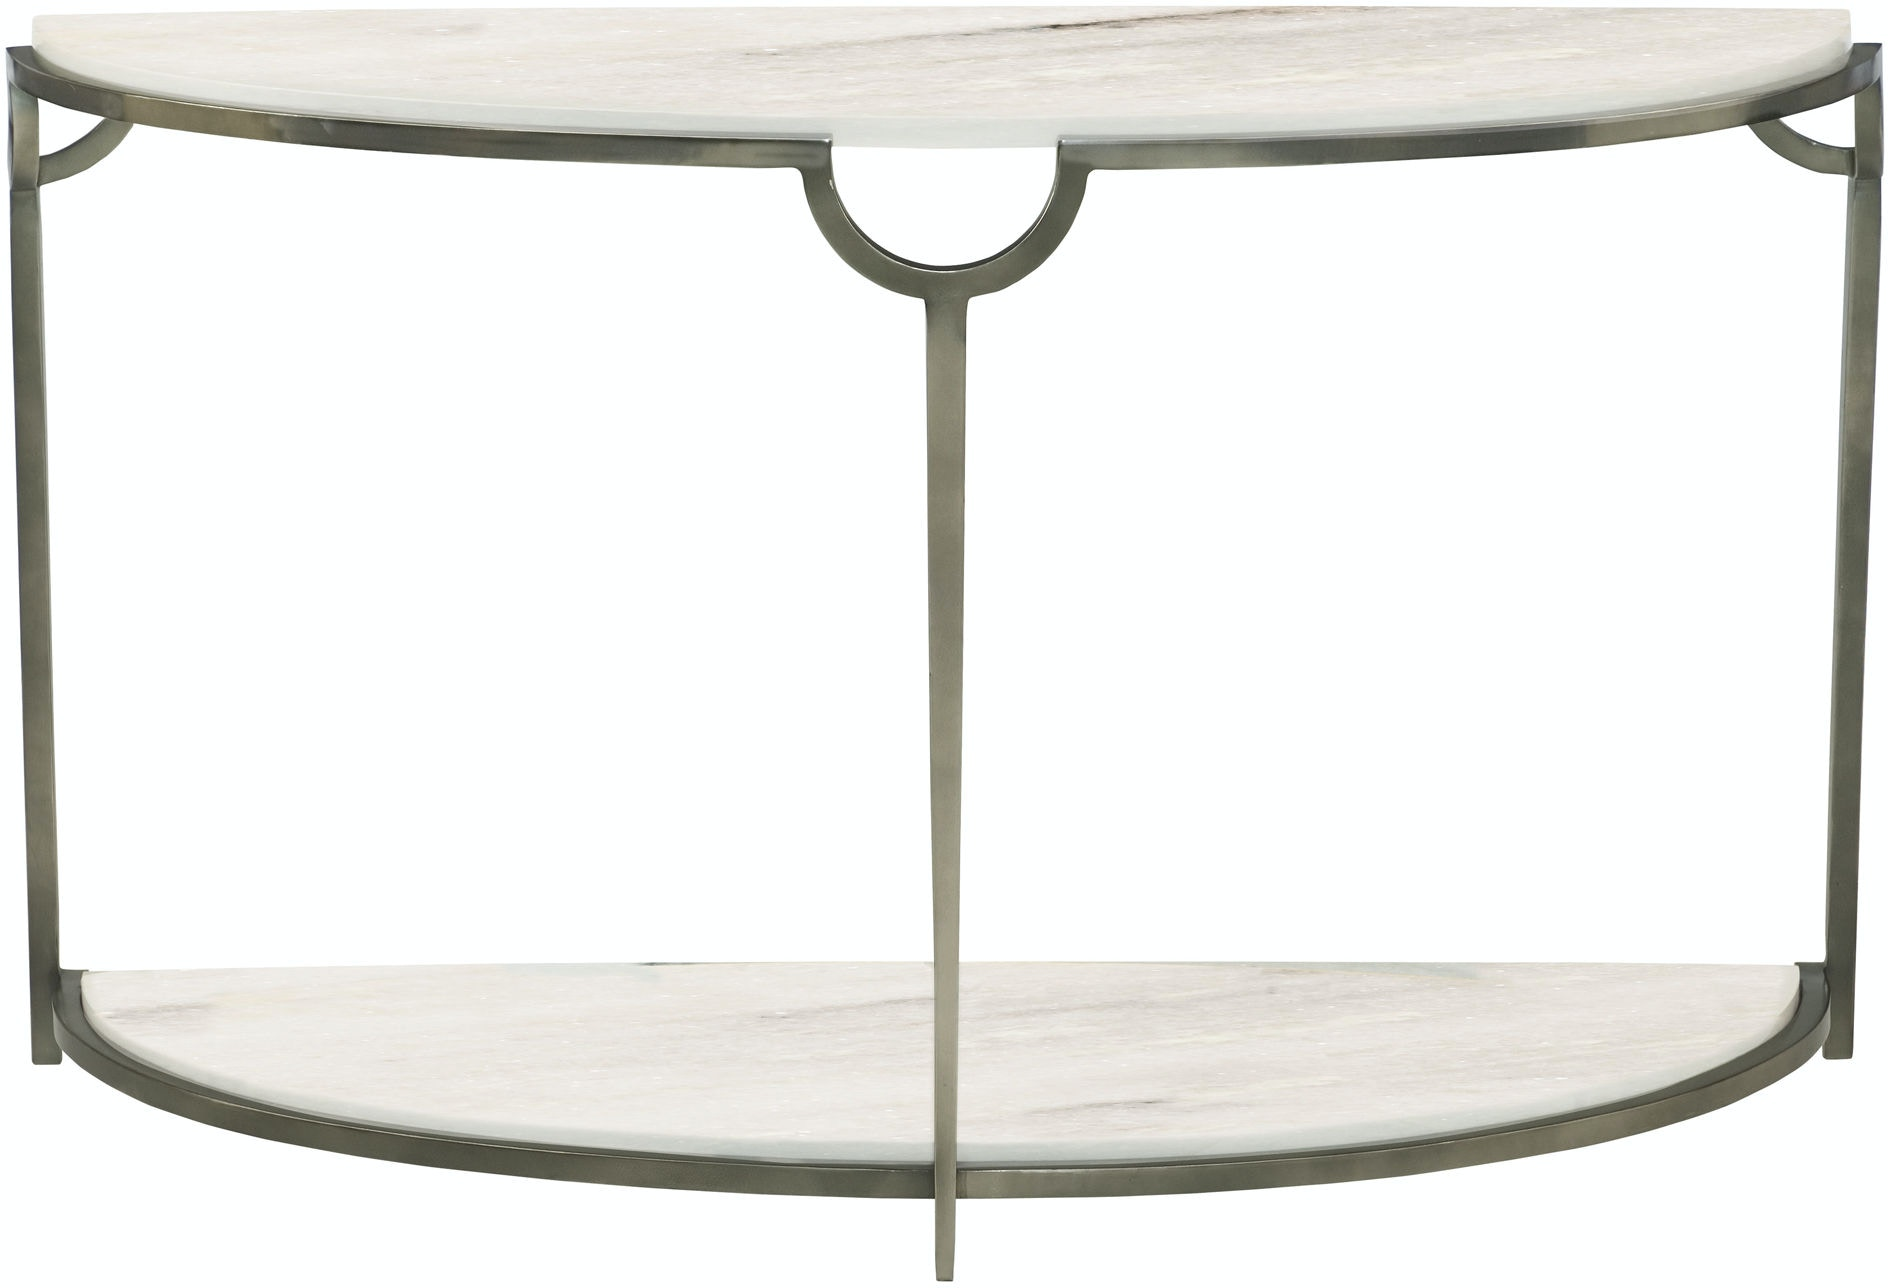 Bernhardt Living Room Demilune Console Table 469 913  : 469 913 1 from www.finessehomeliving.com size 1024 x 768 jpeg 27kB